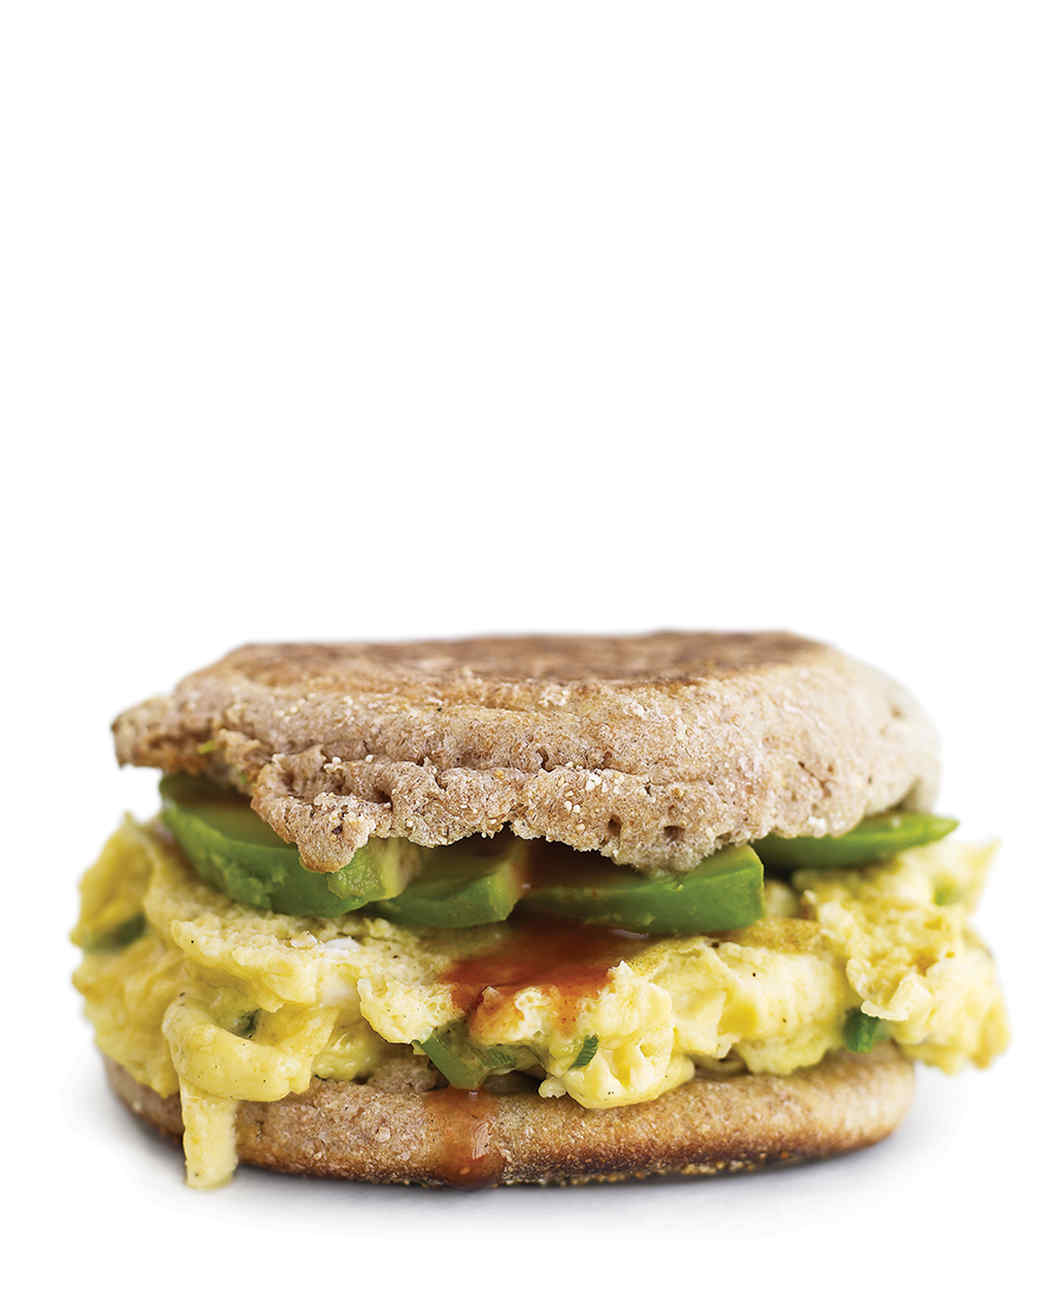 Egg and Avocado Sandwich